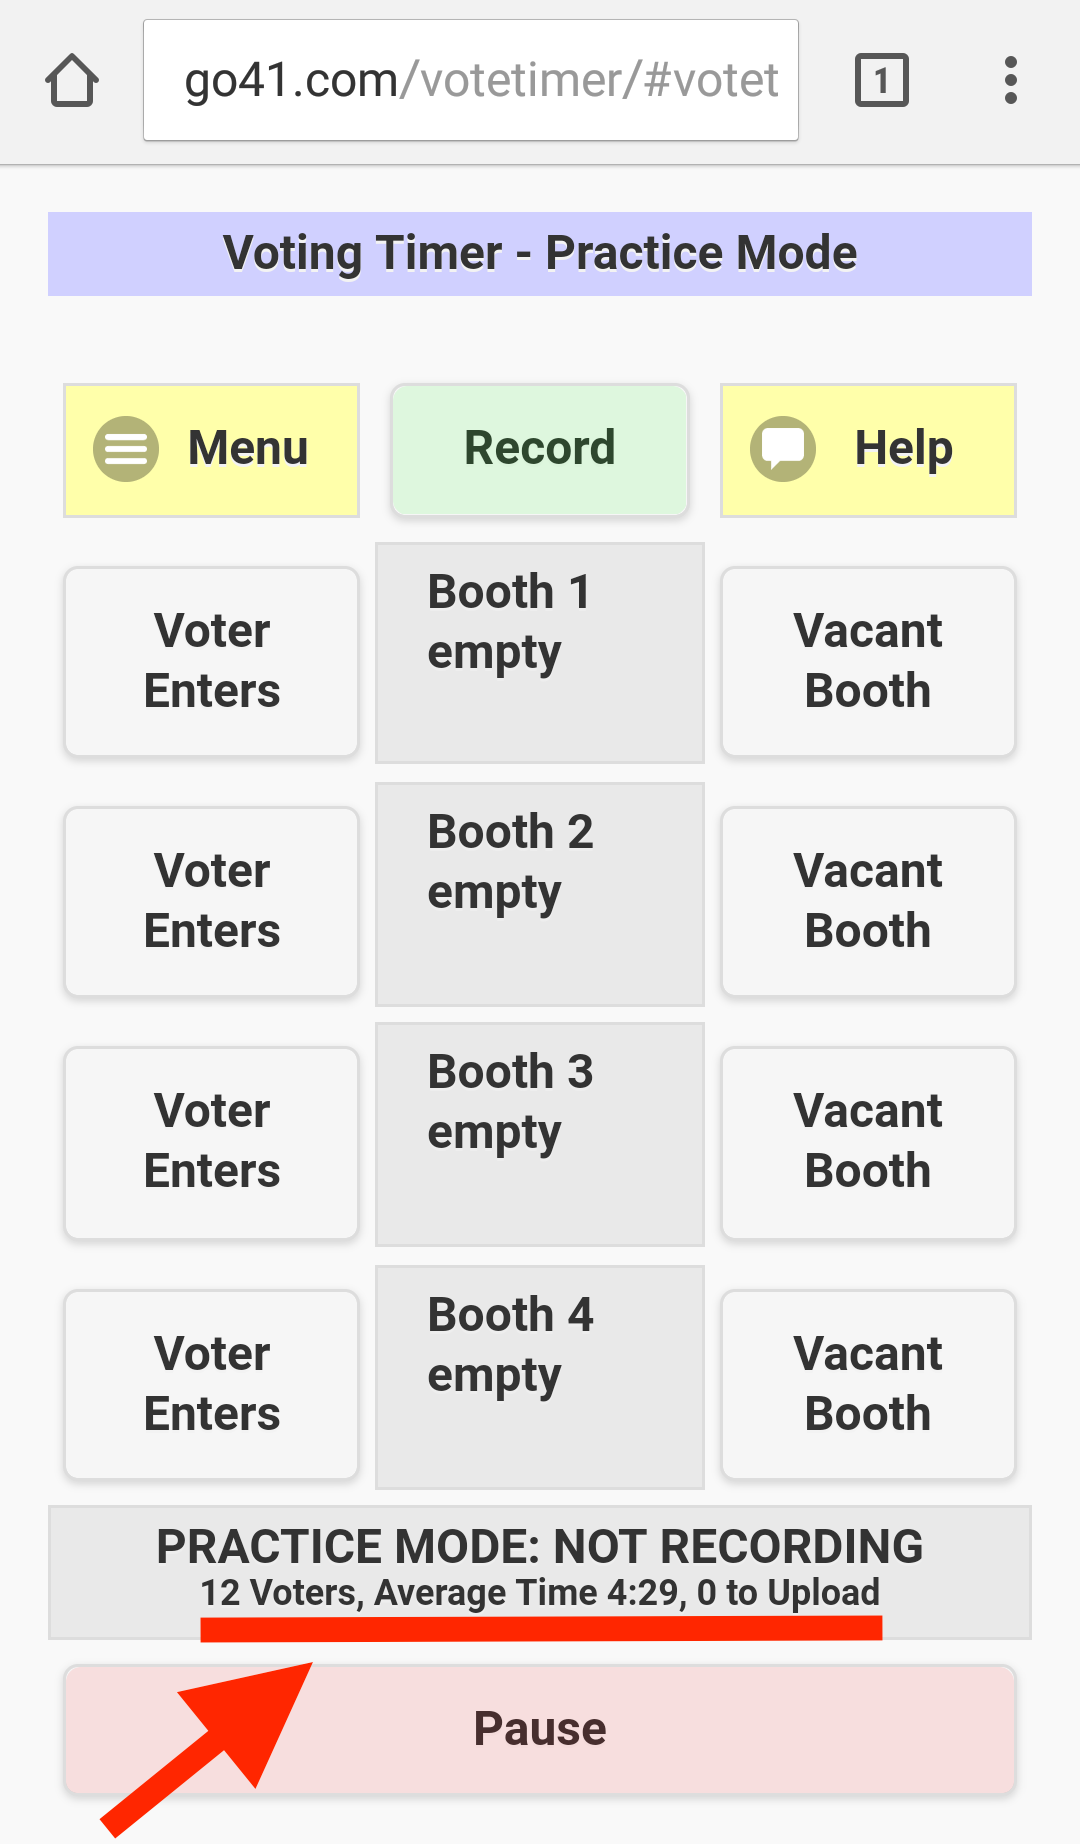 Timer shows 12 voters had an average wait of 4 minutes 29 seconds